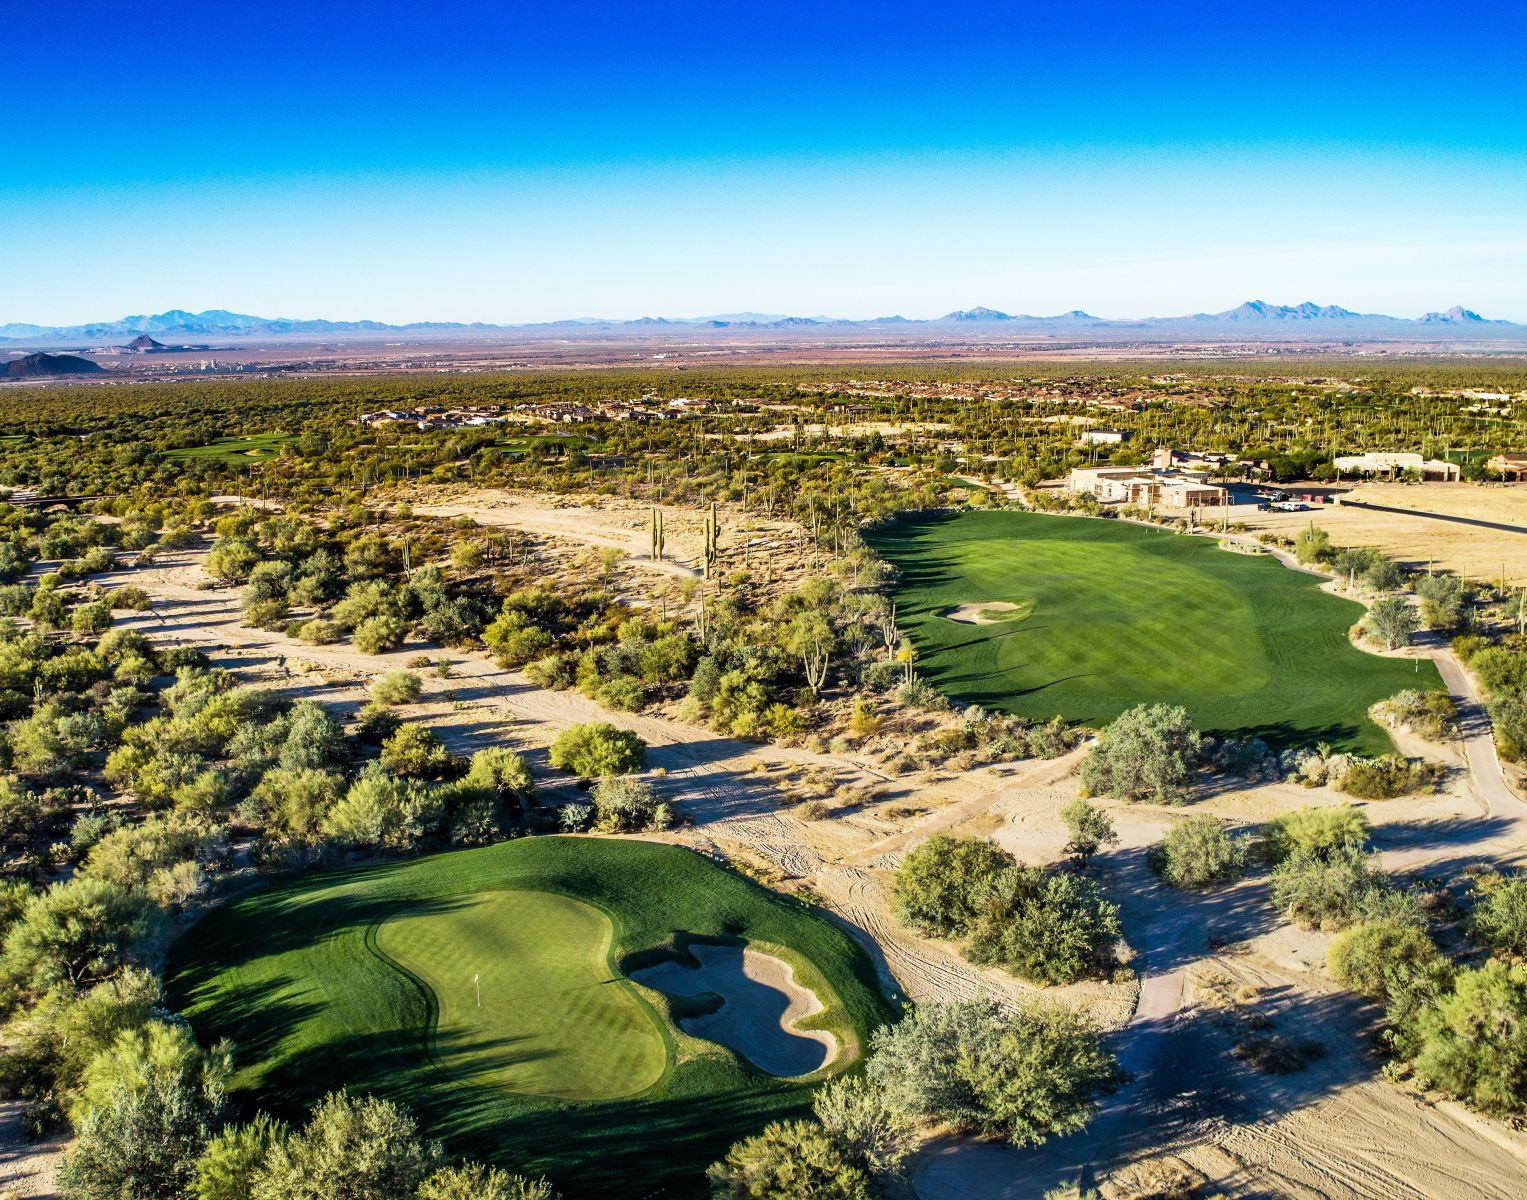 Aerial view of hole 3 on the Wild Burro course